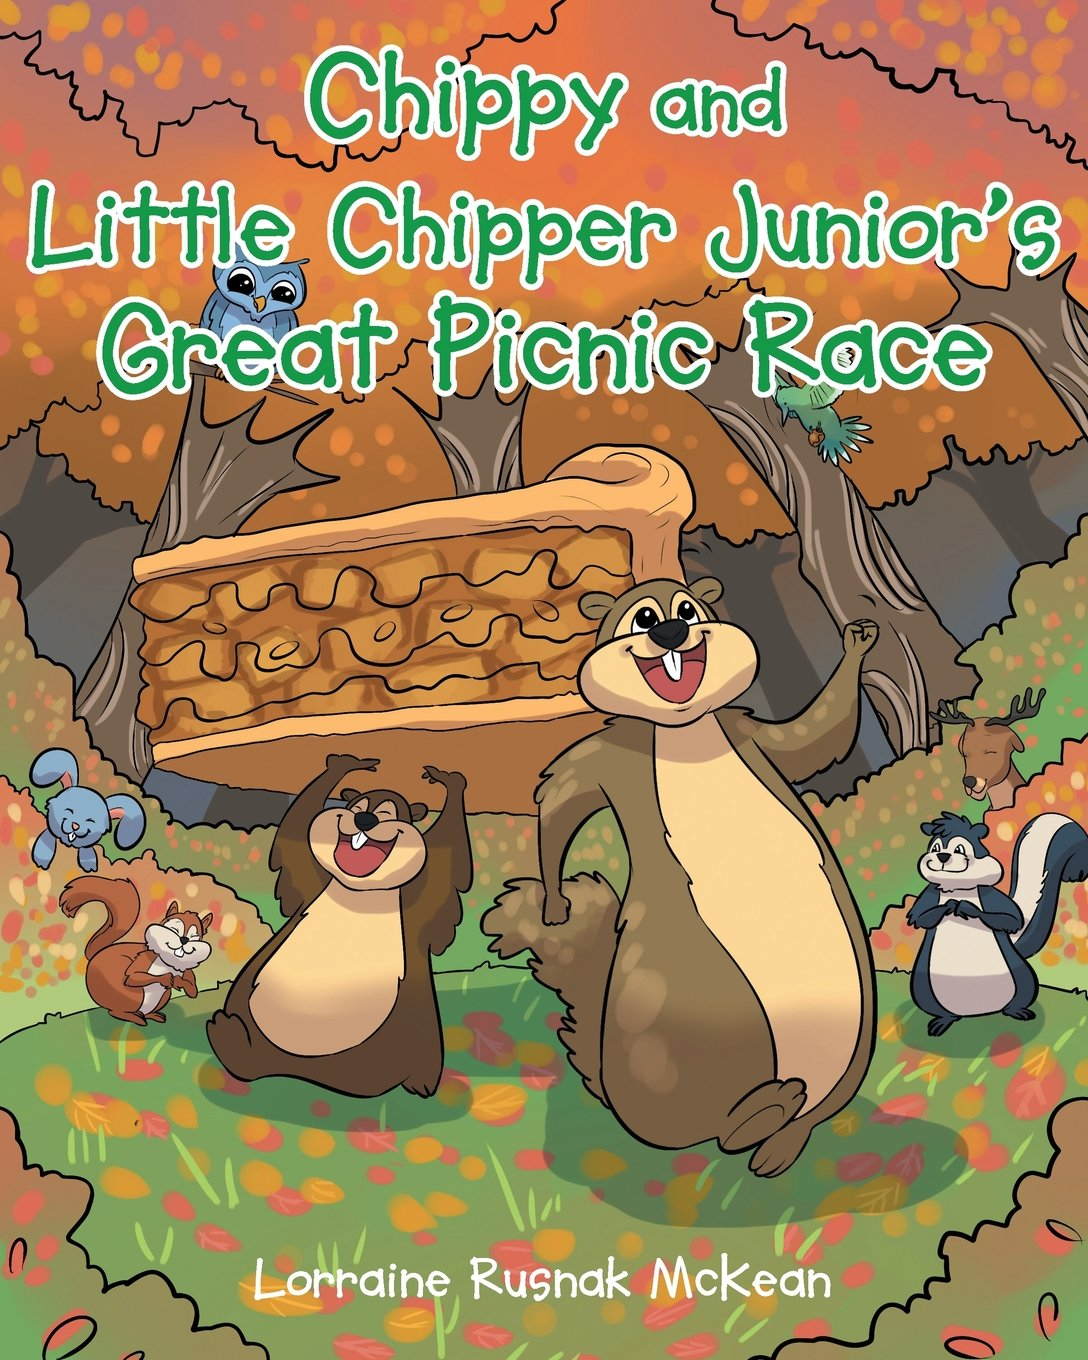 dcaf87f64ad9 Chippy and Little Chipper Junior s Great Picnic Race Paperback – 26 Jul 2017